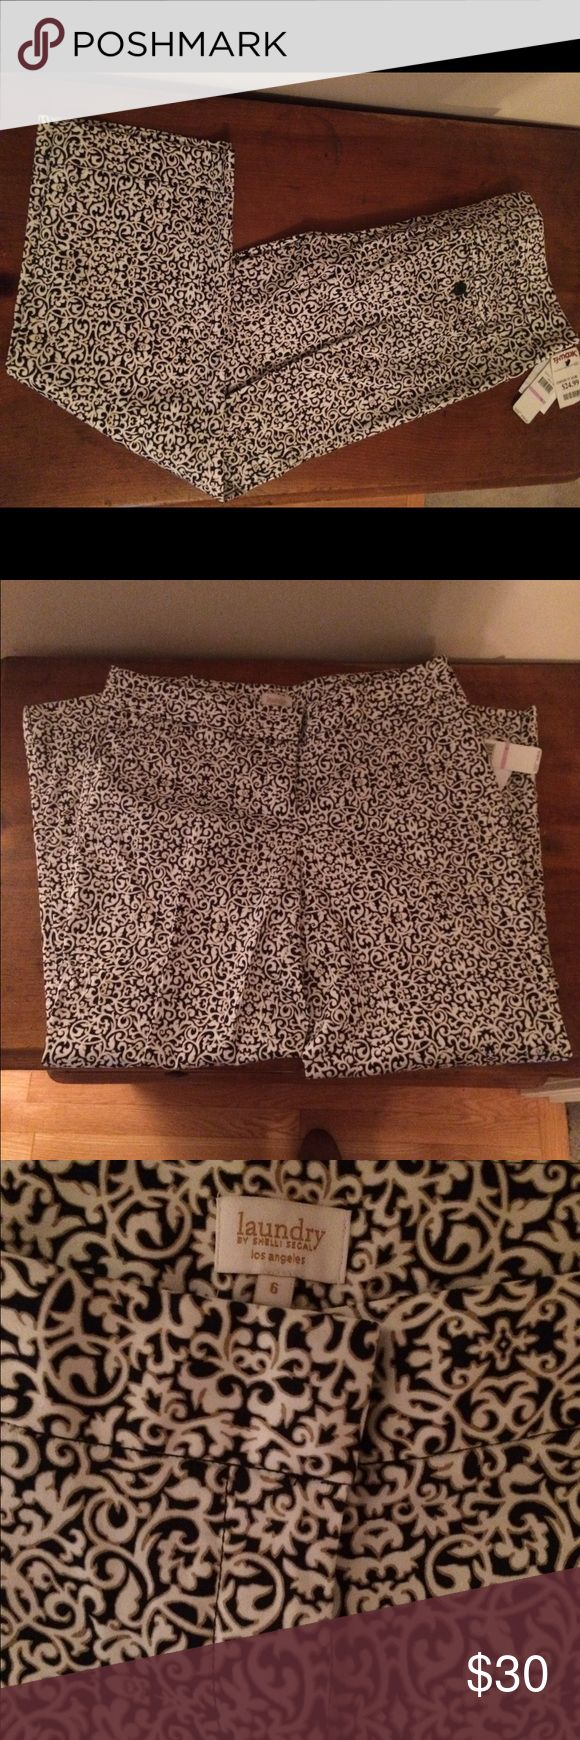 Ankle Patterned Chinos BNWT, never worn patterned chinos. Super comfy, size 6. Great for work, can easily be dressed up or down. No trades❌ Laundry by Shelli Segal Pants Ankle & Cropped